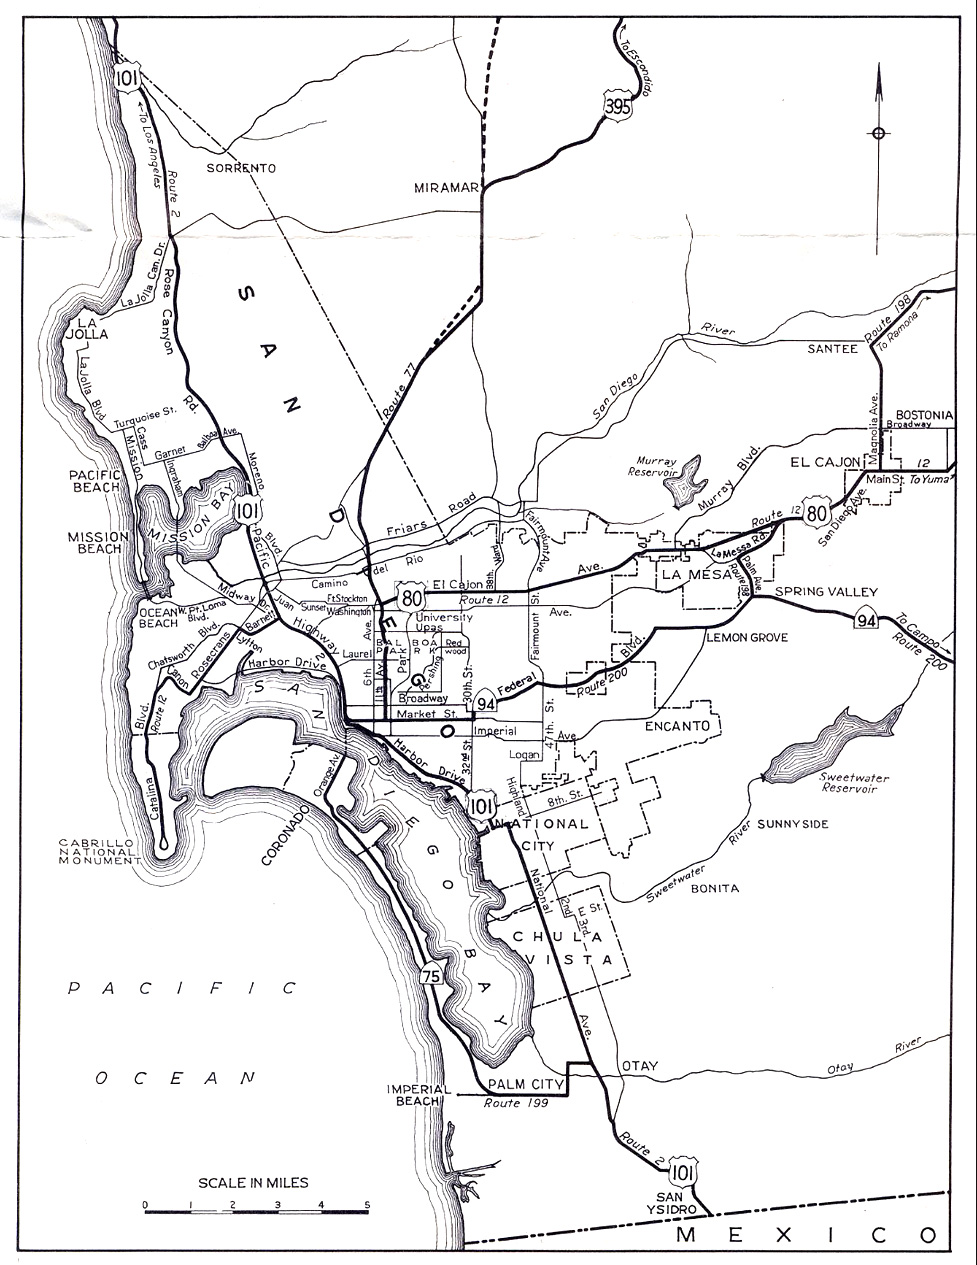 Us 395 Still Went Up Pomerado Road In 1948 But The New Freeway Was Planned Straight Up The I 15 Corridor